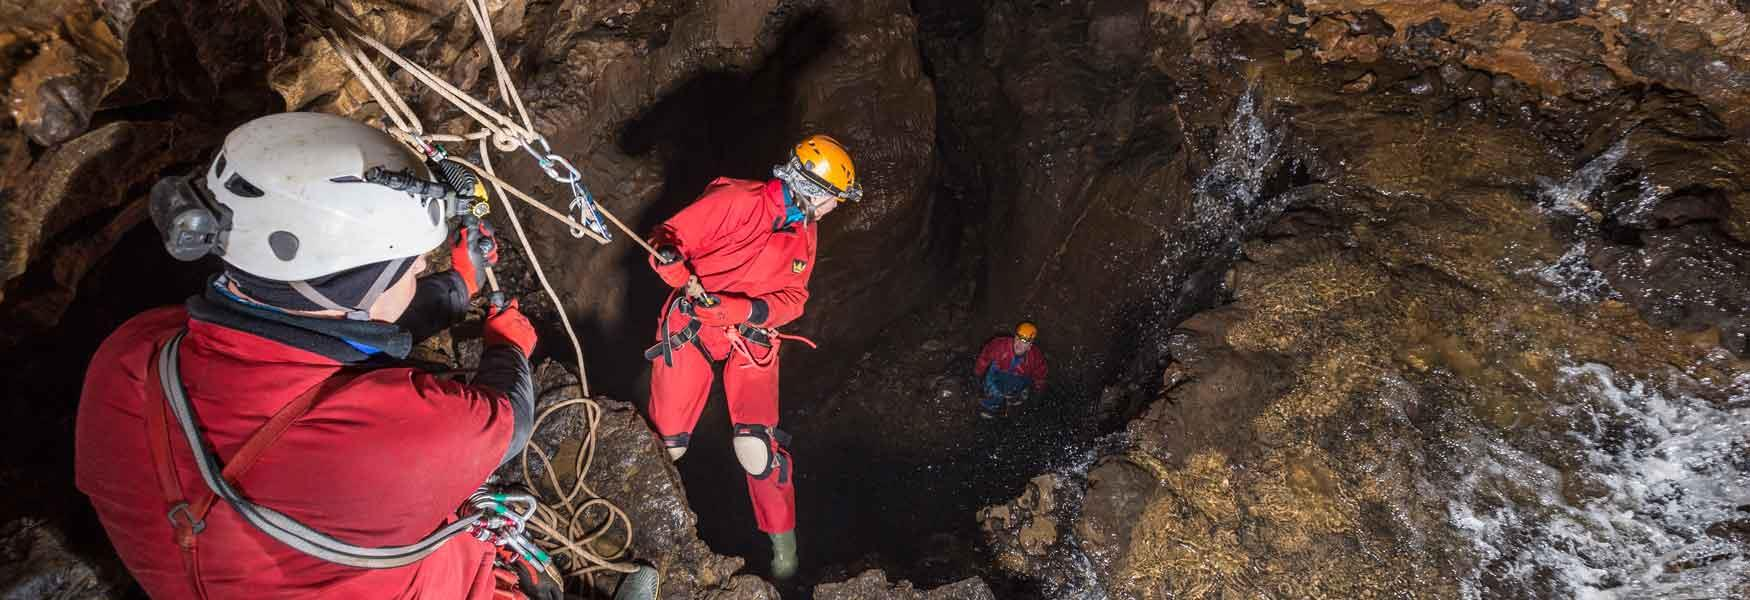 Go caving with expert instructors